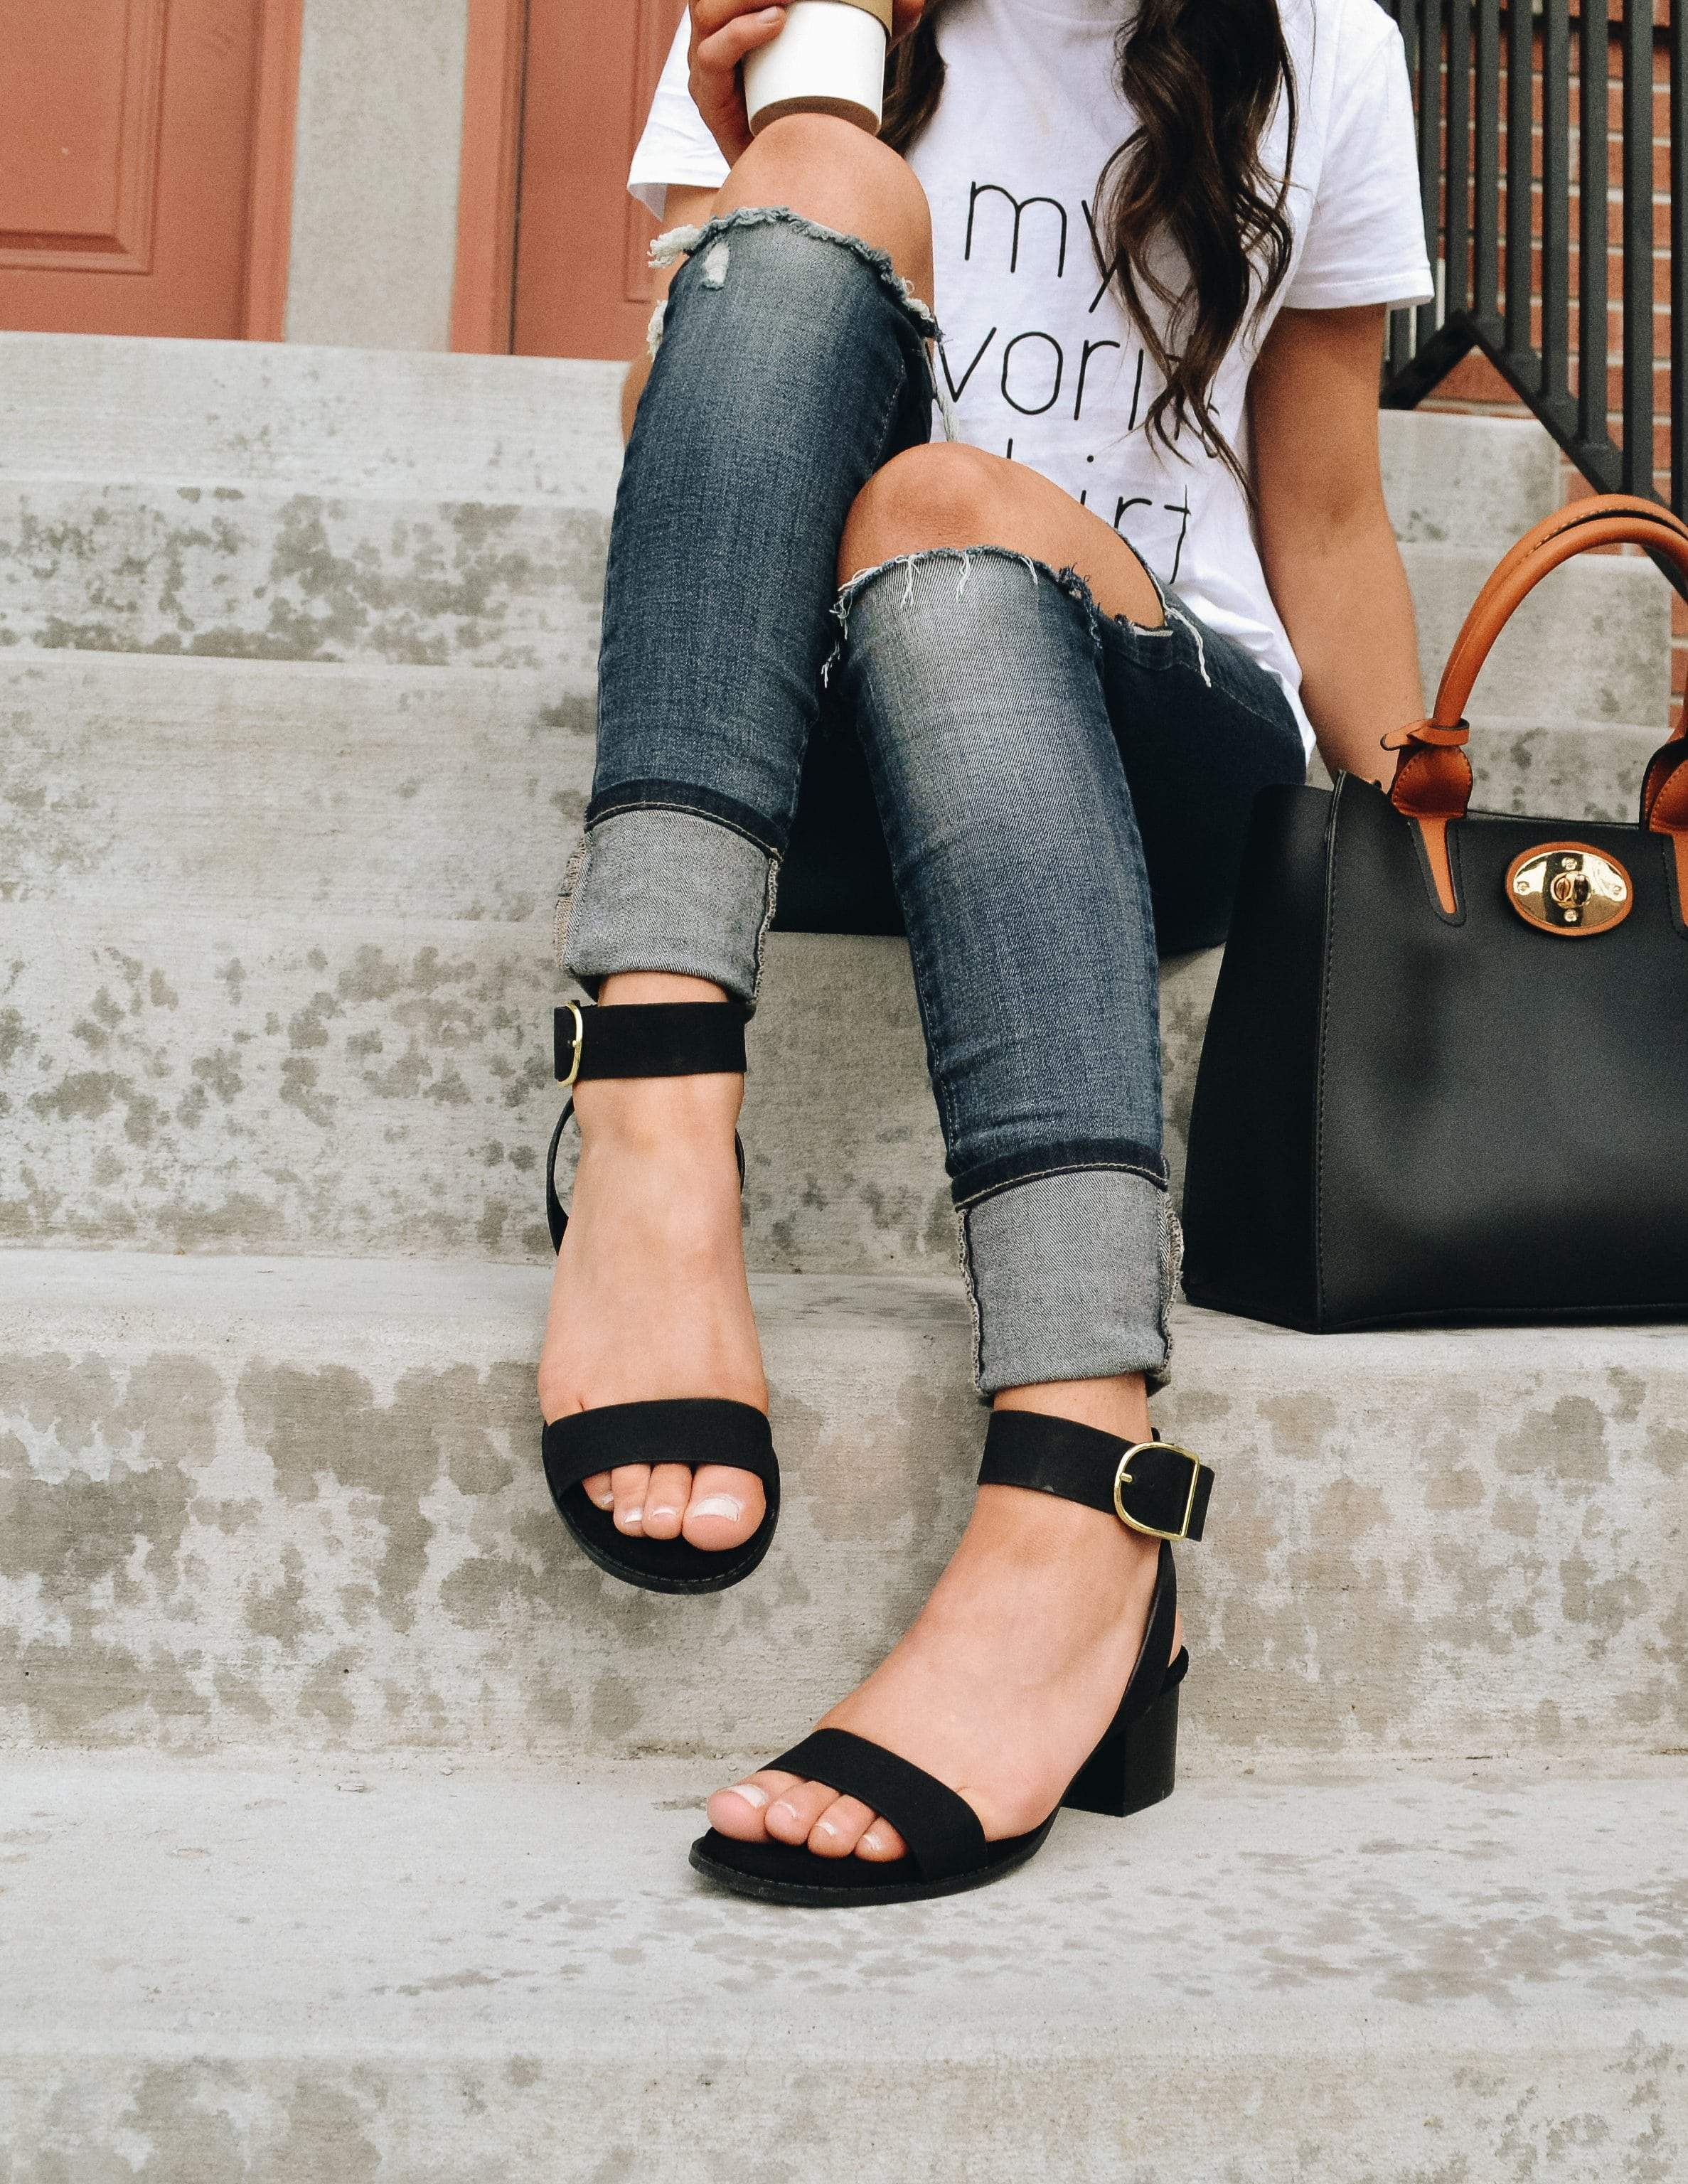 Model sitting on steps holding coffee and bag wearing denim and black heels